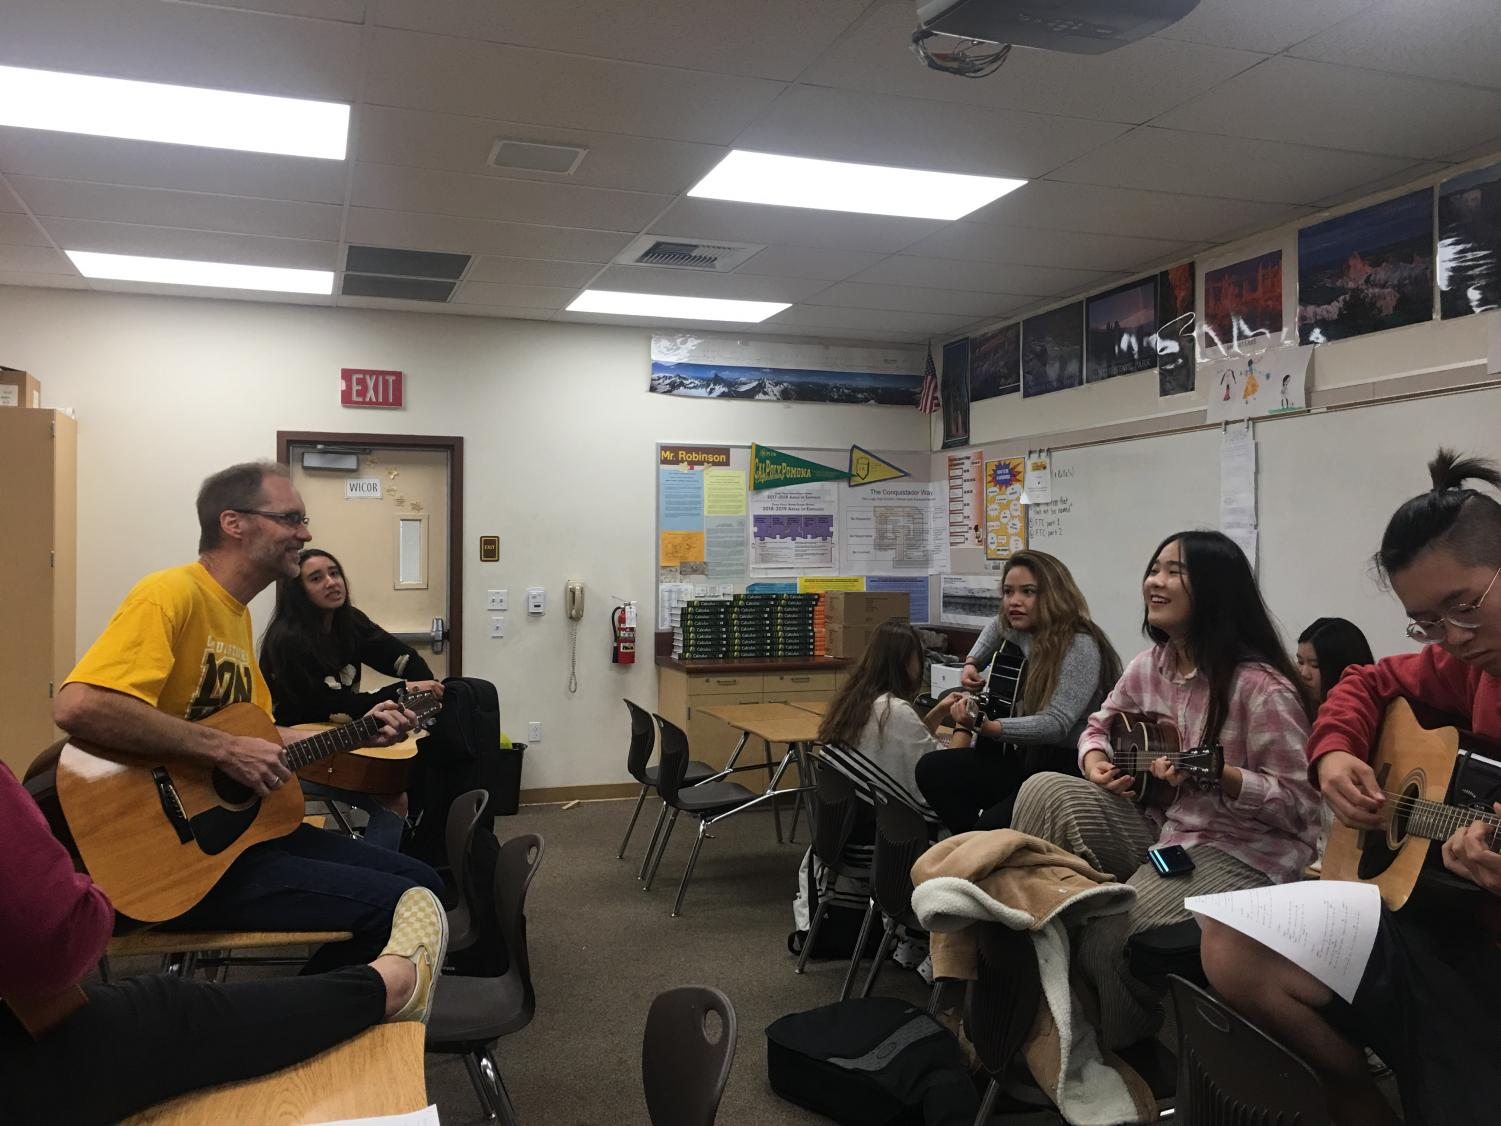 Mr.Robinson's sits in front of students, teaching them the craft of music.